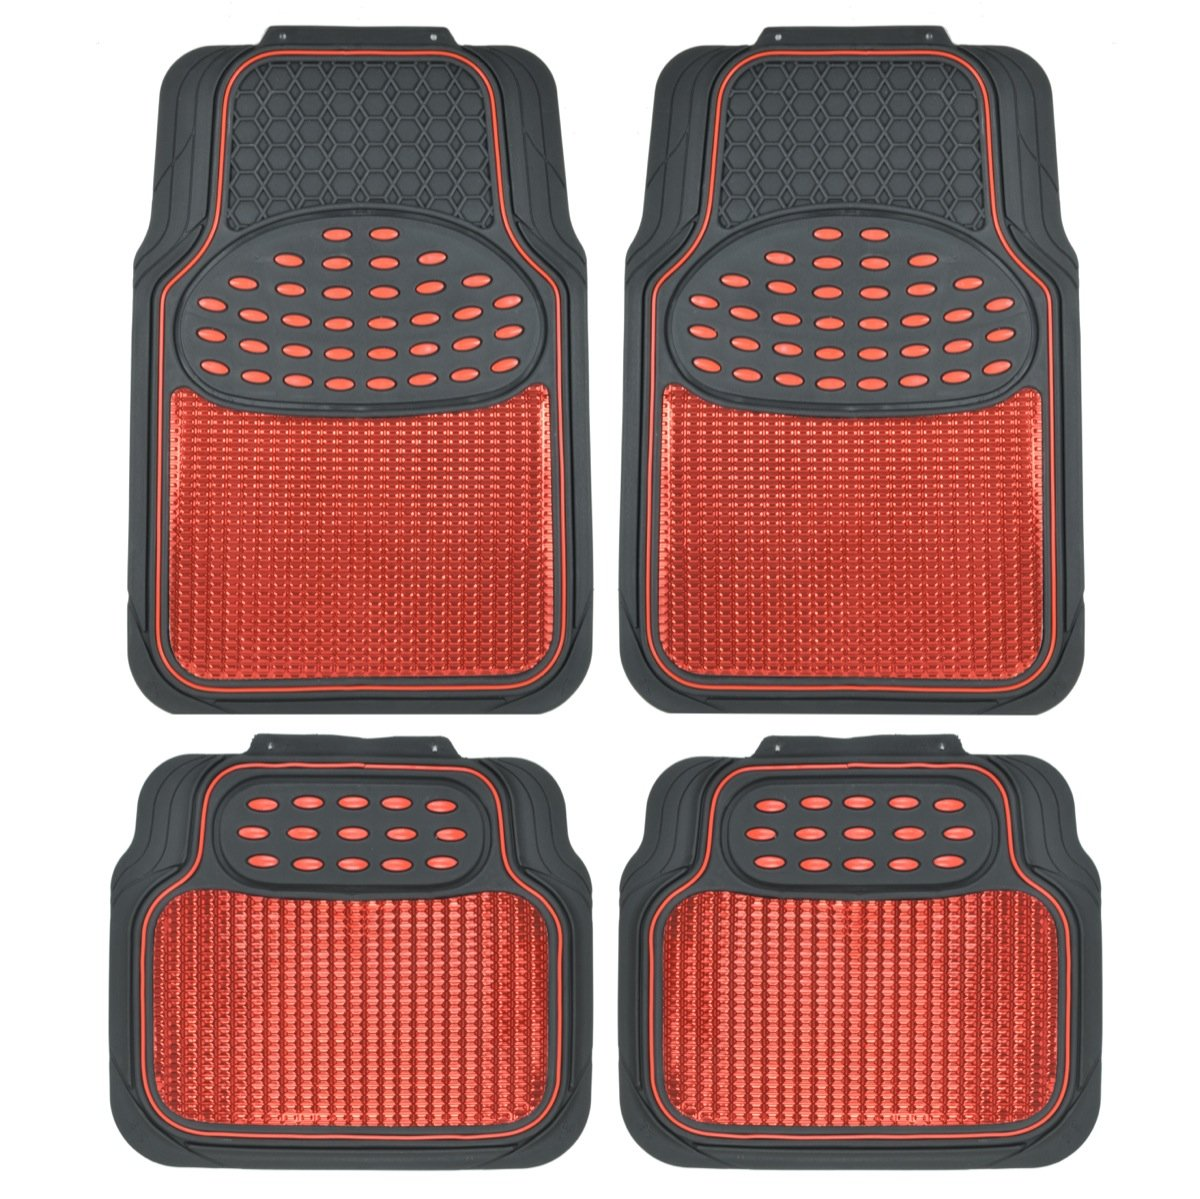 mats front rubber set cars for atlas accessories shop volkswagen floor vw